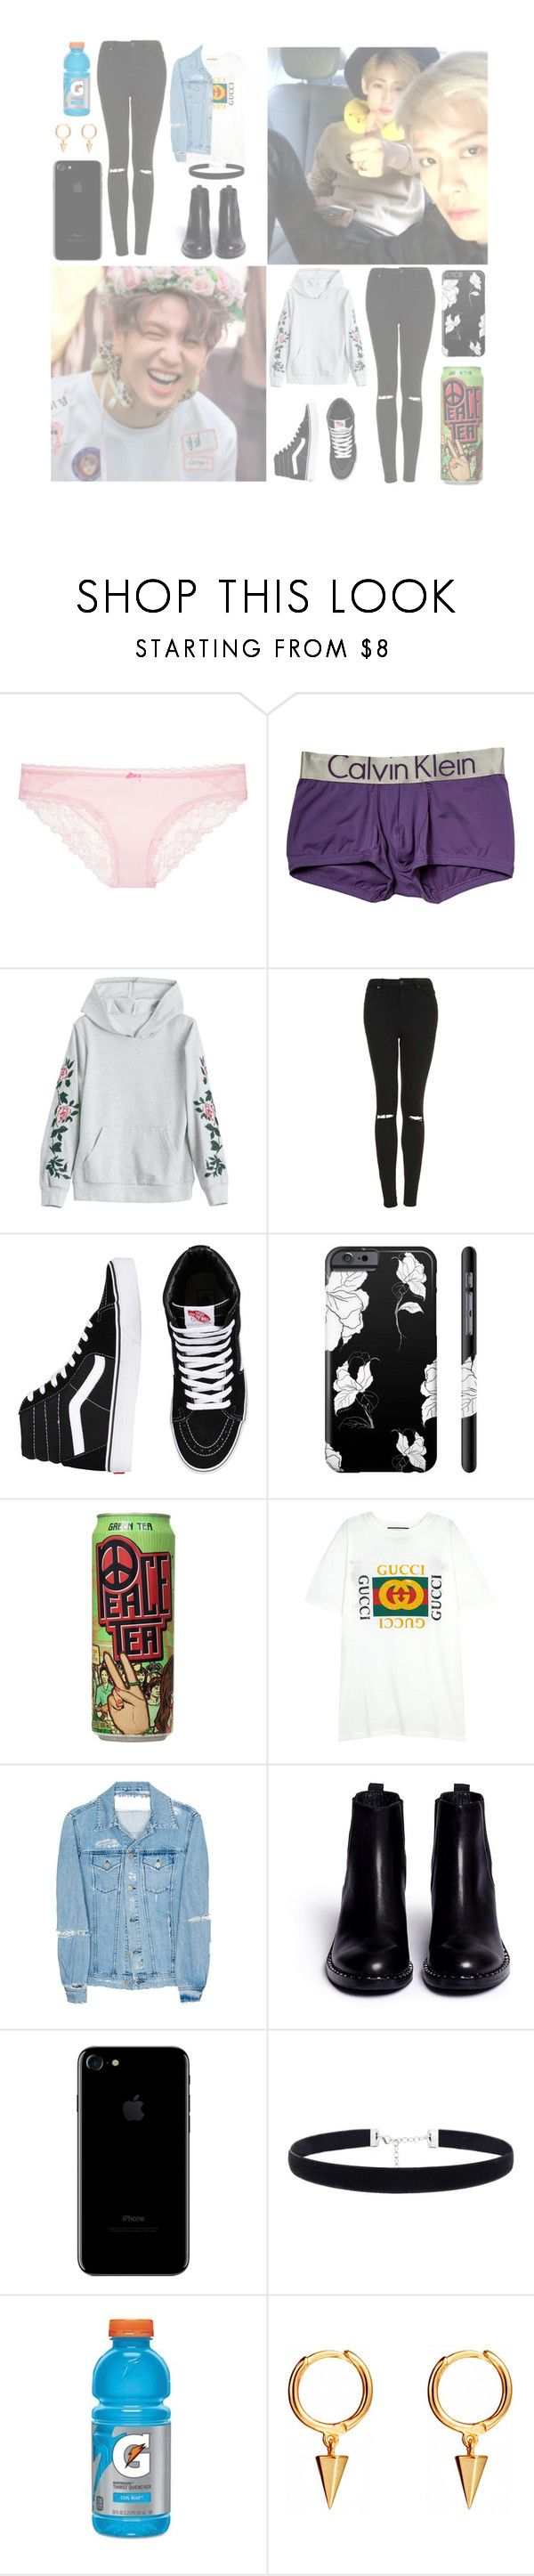 """& — "" You may not feel the same way as I do. I may never see you again, that's what I'm afraid of. Don't have the courage to tell you. With this song, let me open my heart to you. "" — &"" by heathxns ❤ liked on Polyvore featuring beauty, Victoria's Secret, Bambam, Calvin Klein Underwear, Topshop, Vans, Gucci, Acne Studios, Ash and Gatorade"